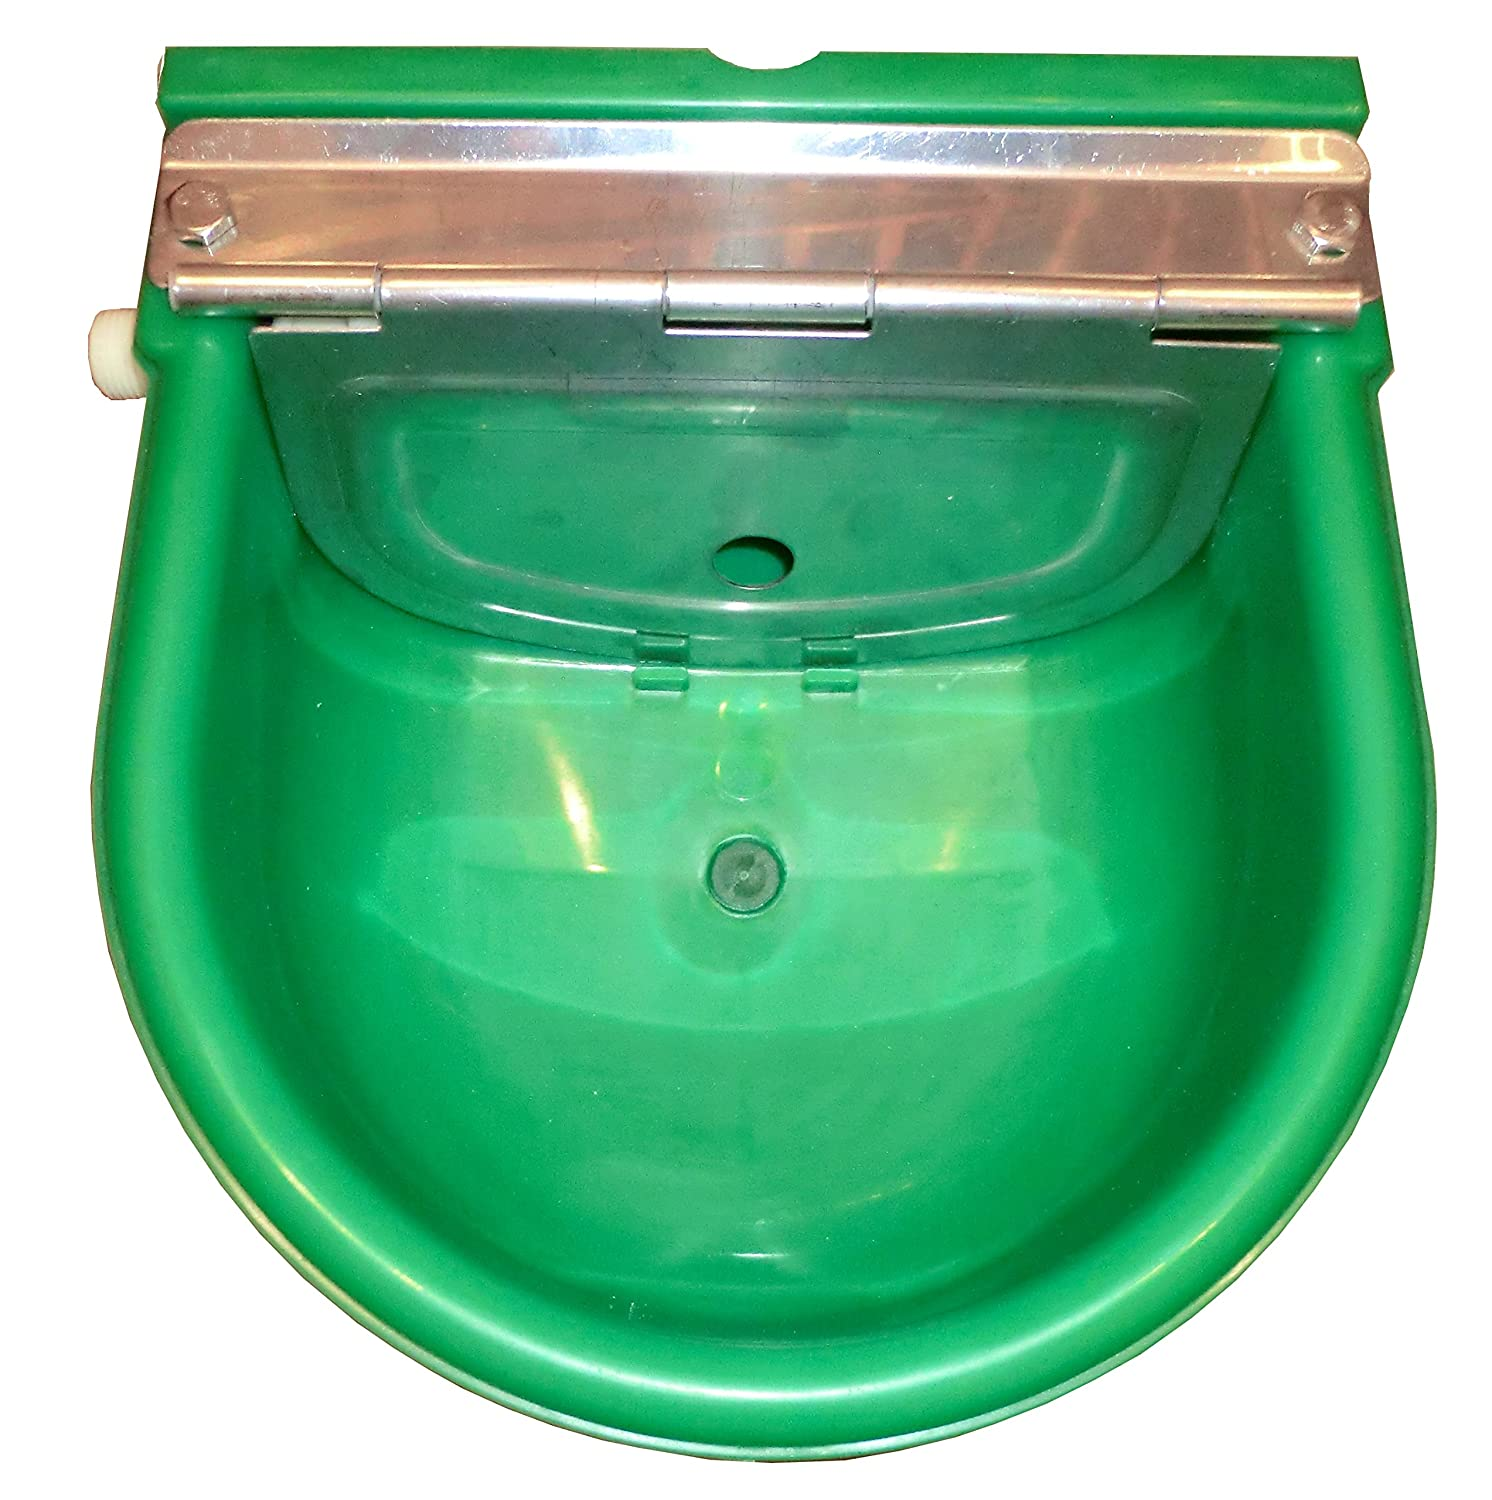 Large Automatic Waterer for Horses, Cows, Goats and Other Live Stock Rabbitnipples.com